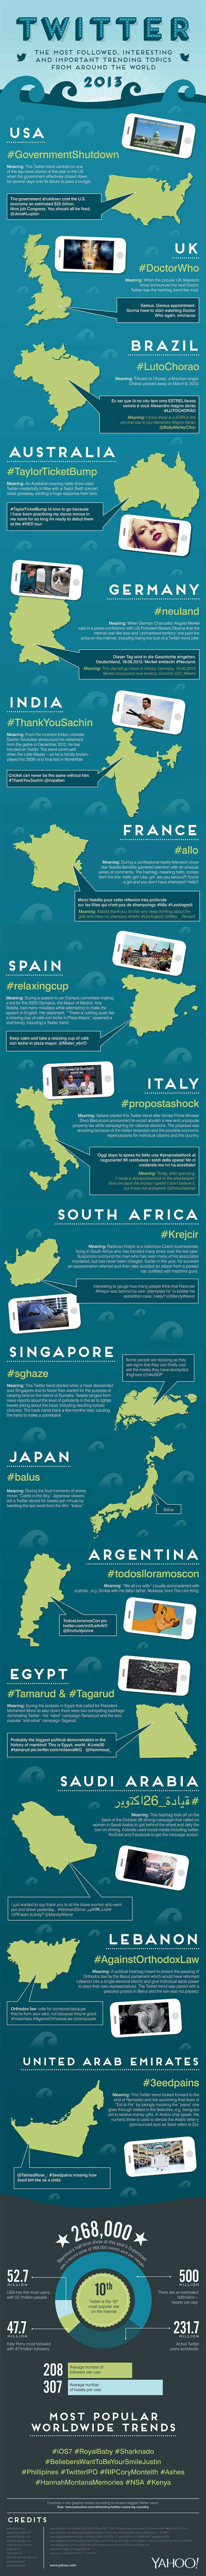 twitter-trends-2013-infographic-yahoo[1]